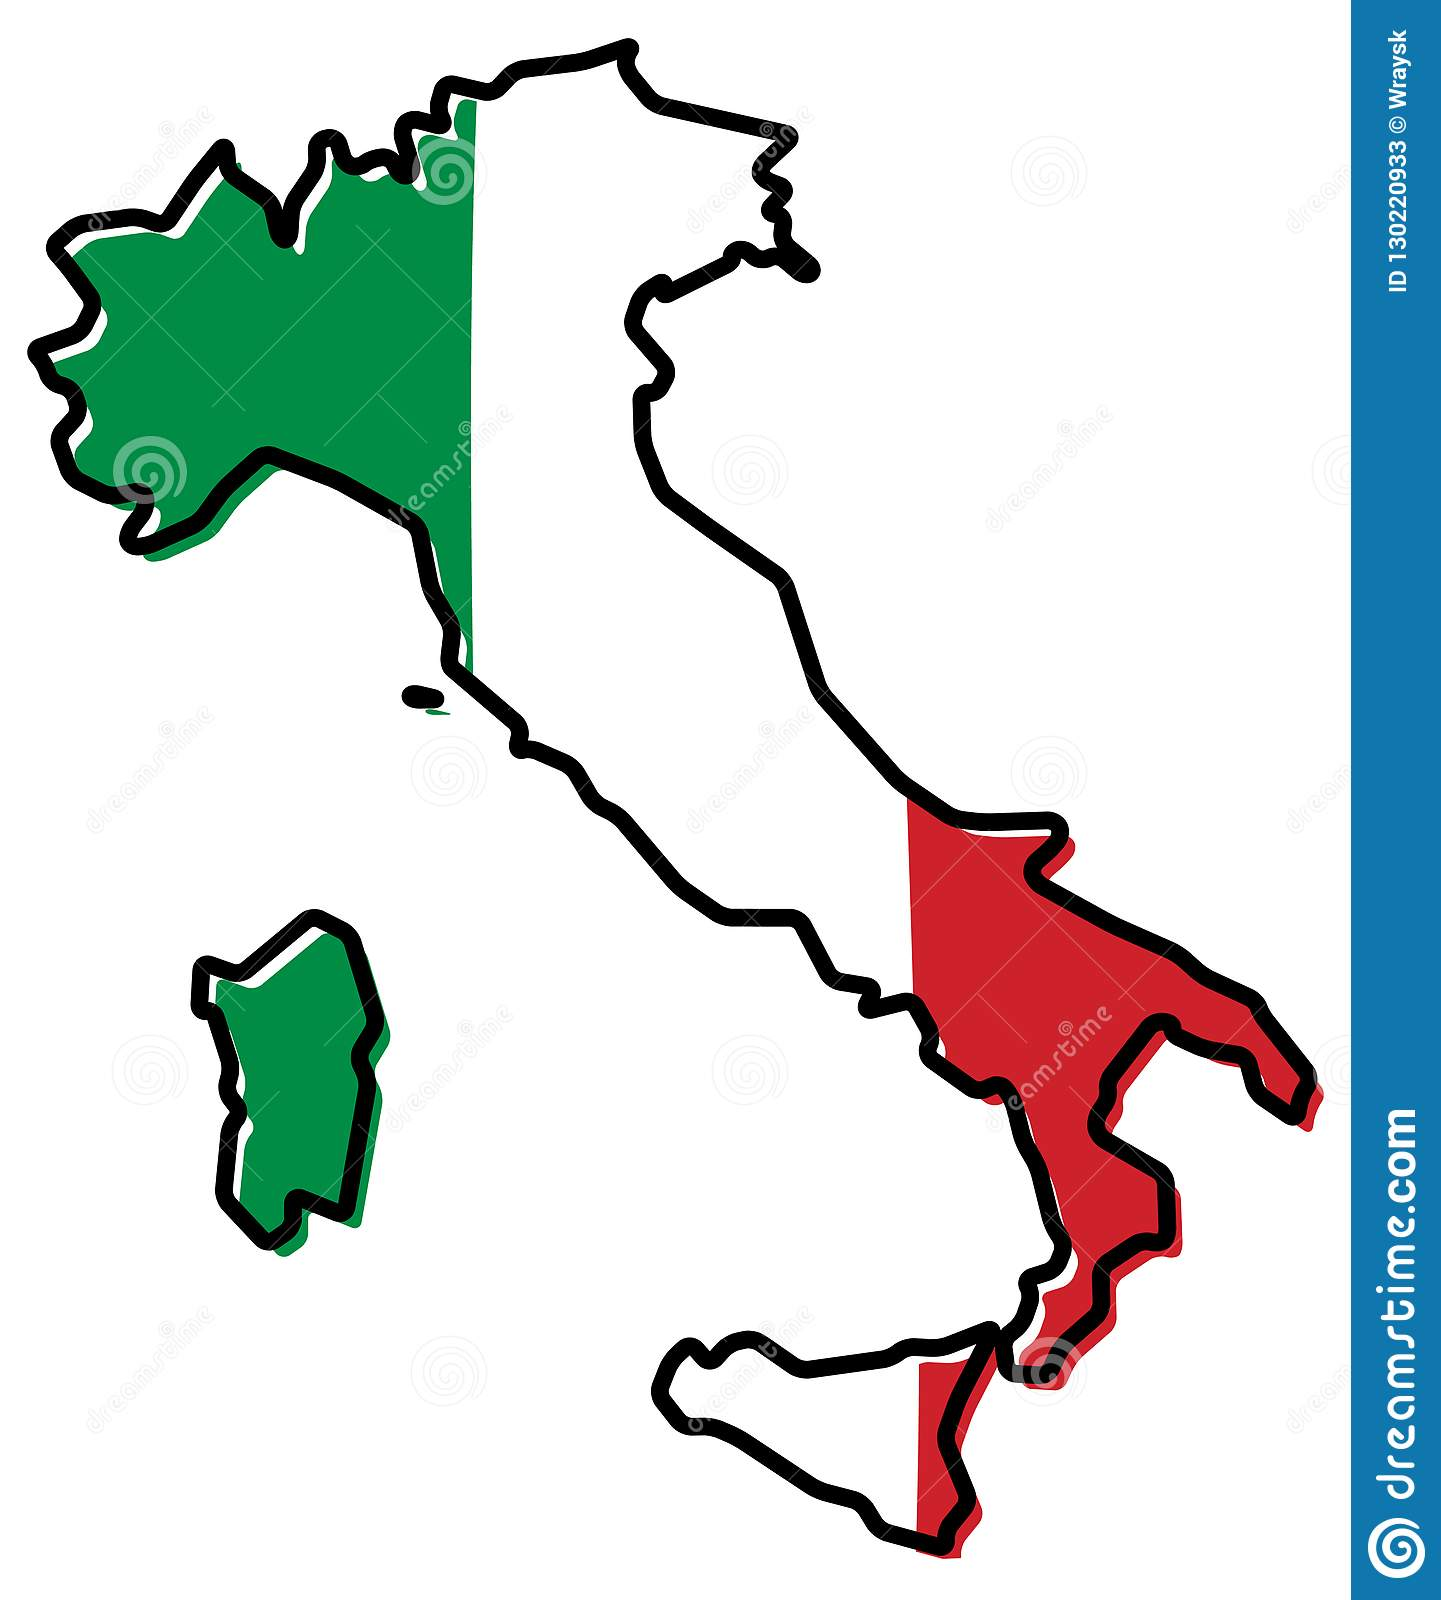 Map Of Italy Outline.Simplified Map Of Italy Outline With Slightly Bent Flag Under I